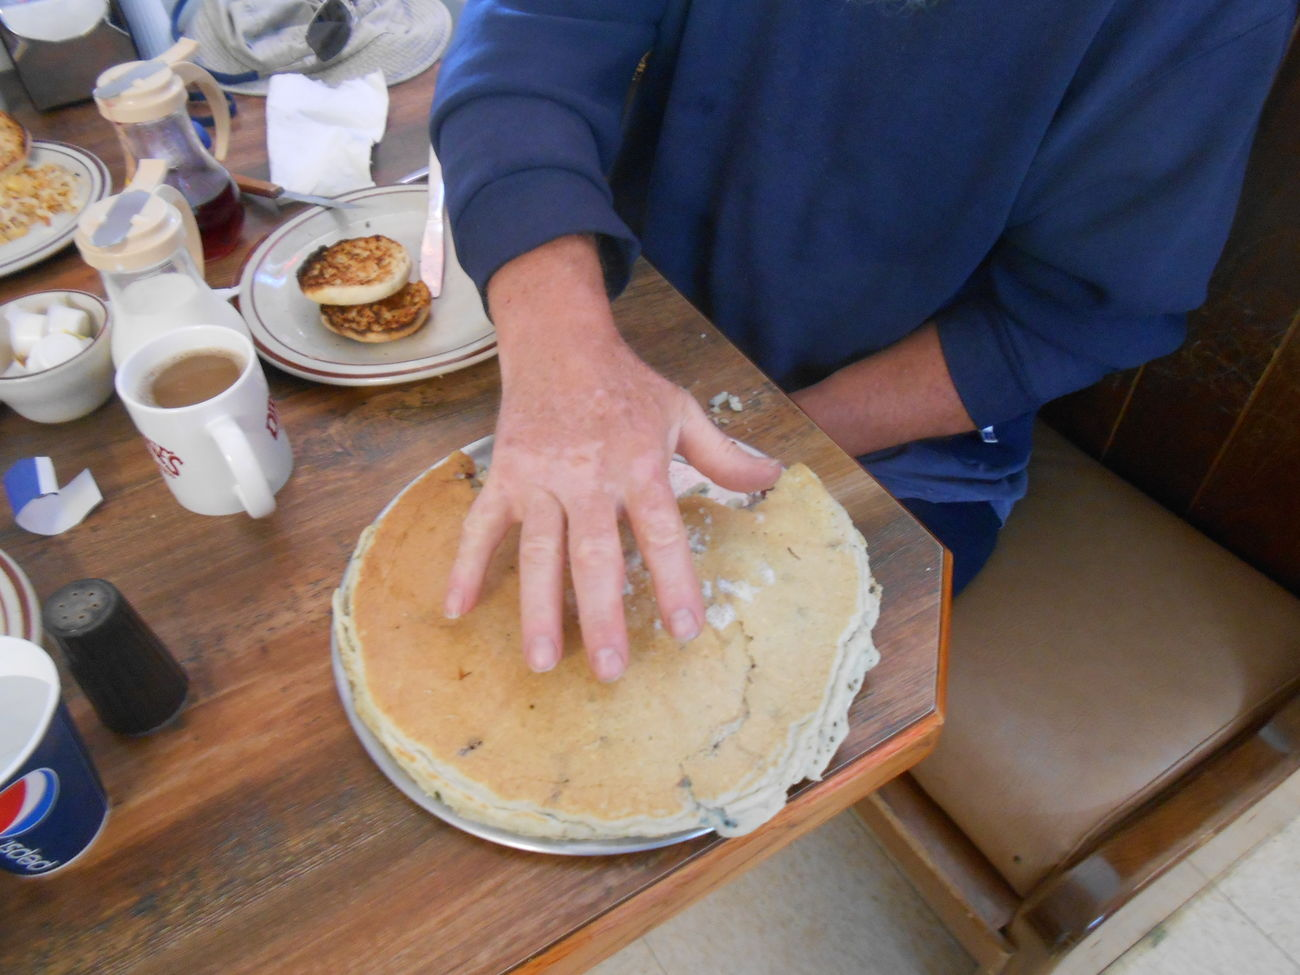 Huge pancake for breakfast B Close-up Food Food And Drink Giant Pancake Human Body Part Human Hand Indoors  Pancakes Temptation Wyoming